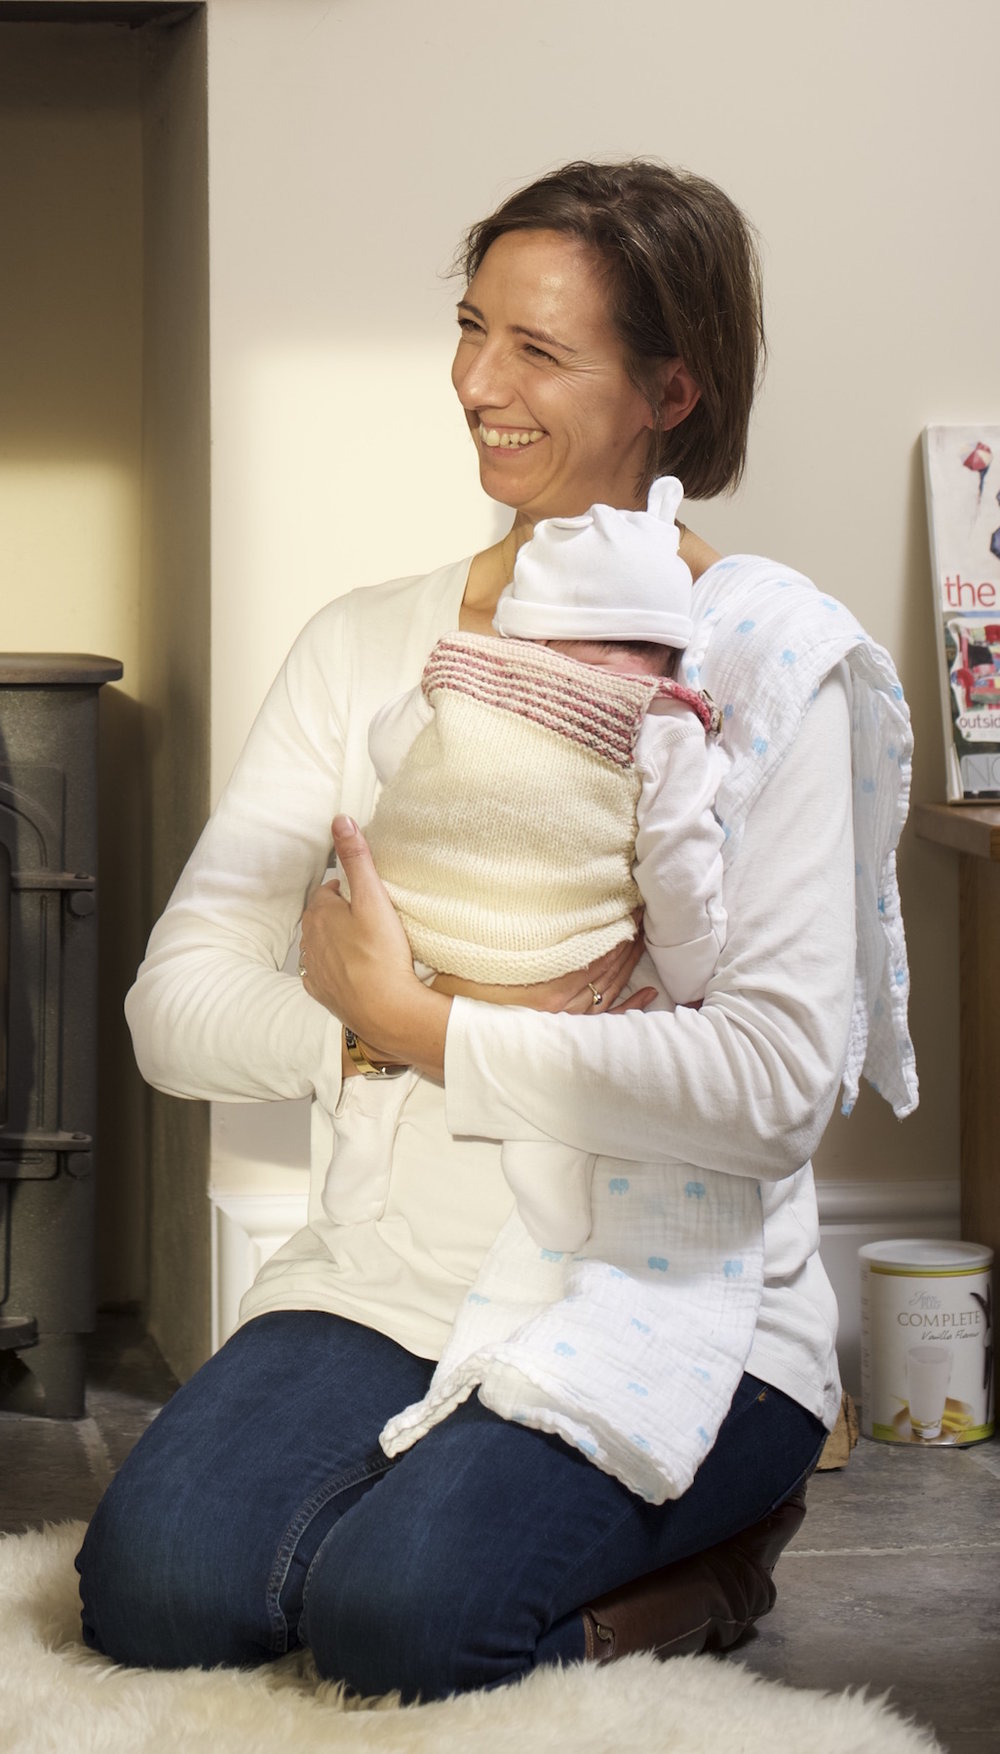 click here to find out more about our postnatal doula services